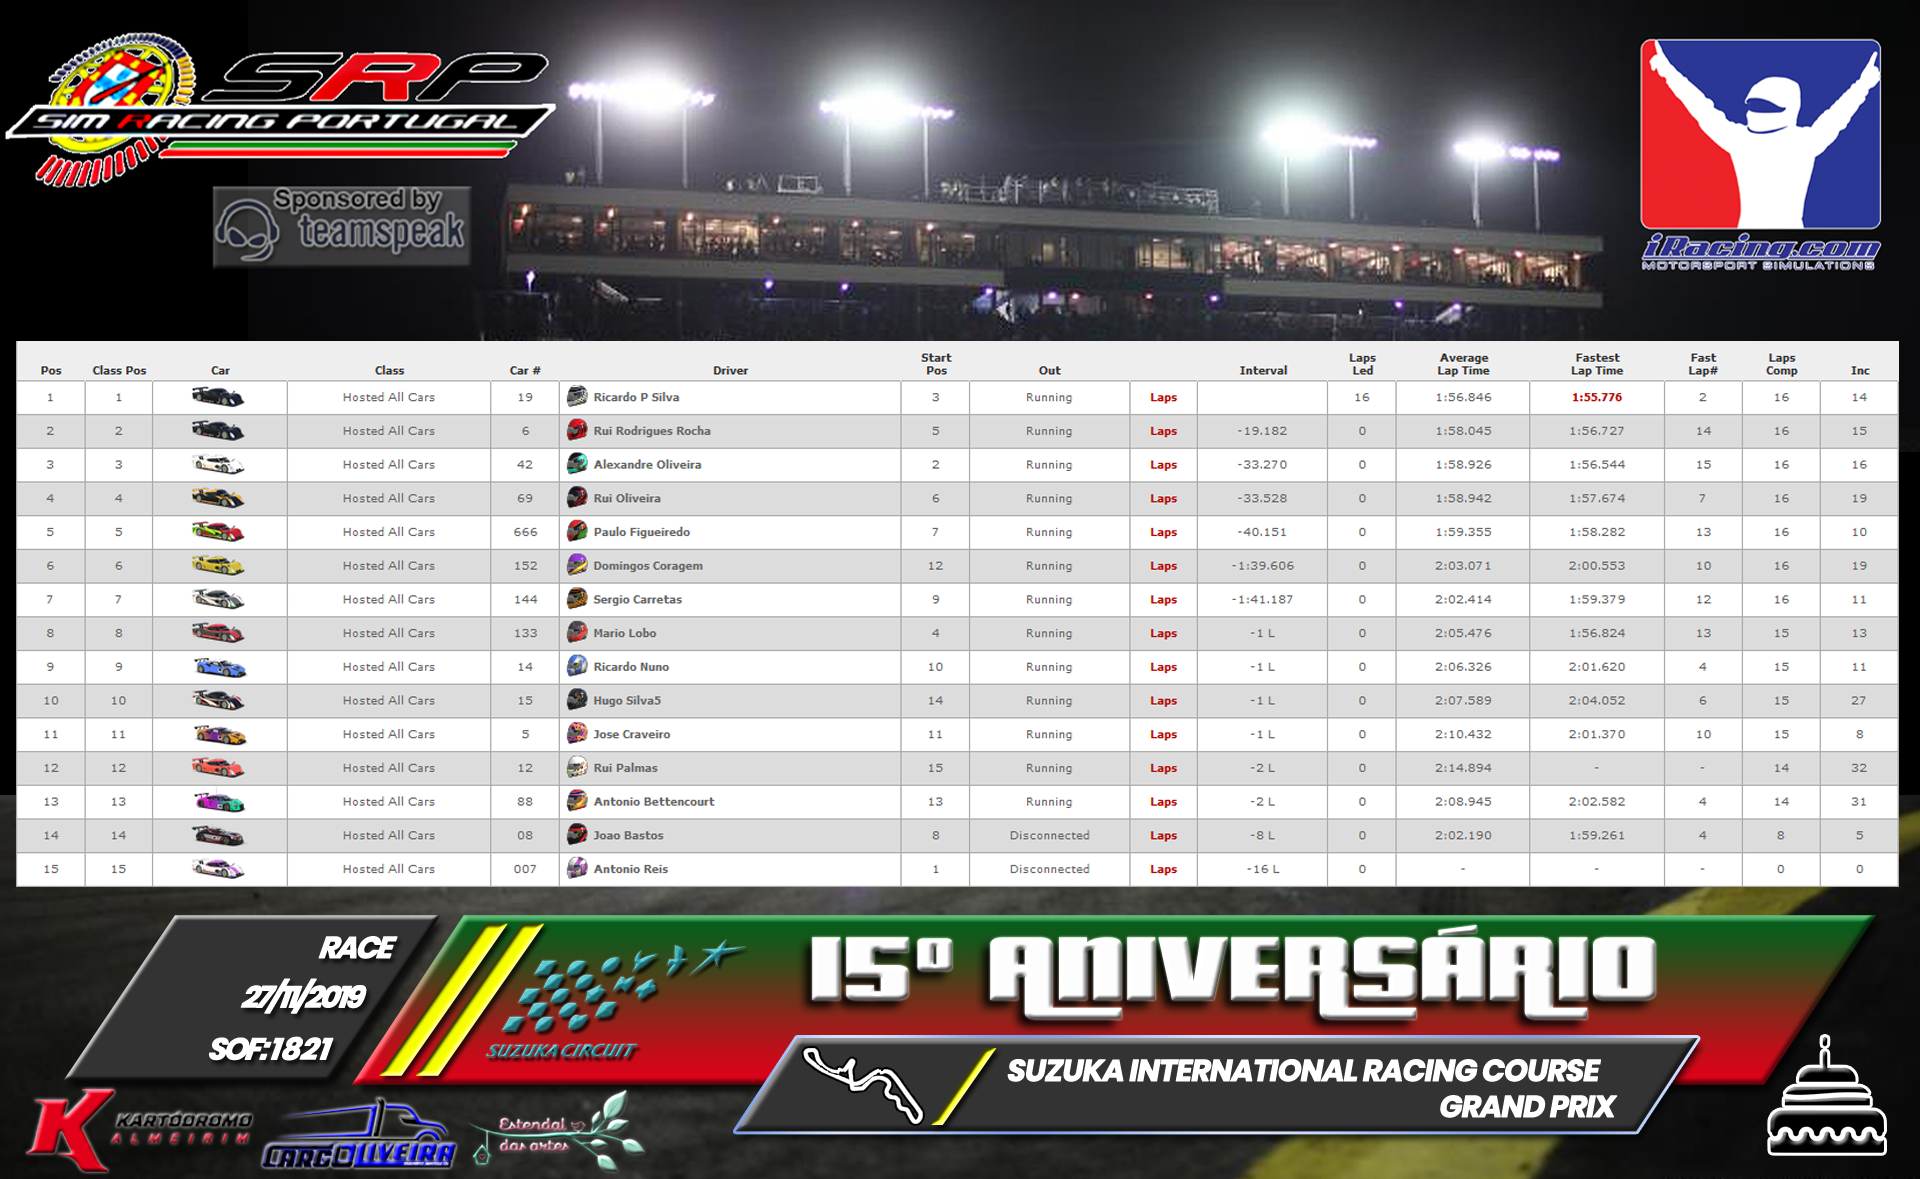 [Image: RaceResults2019-2-1.png]